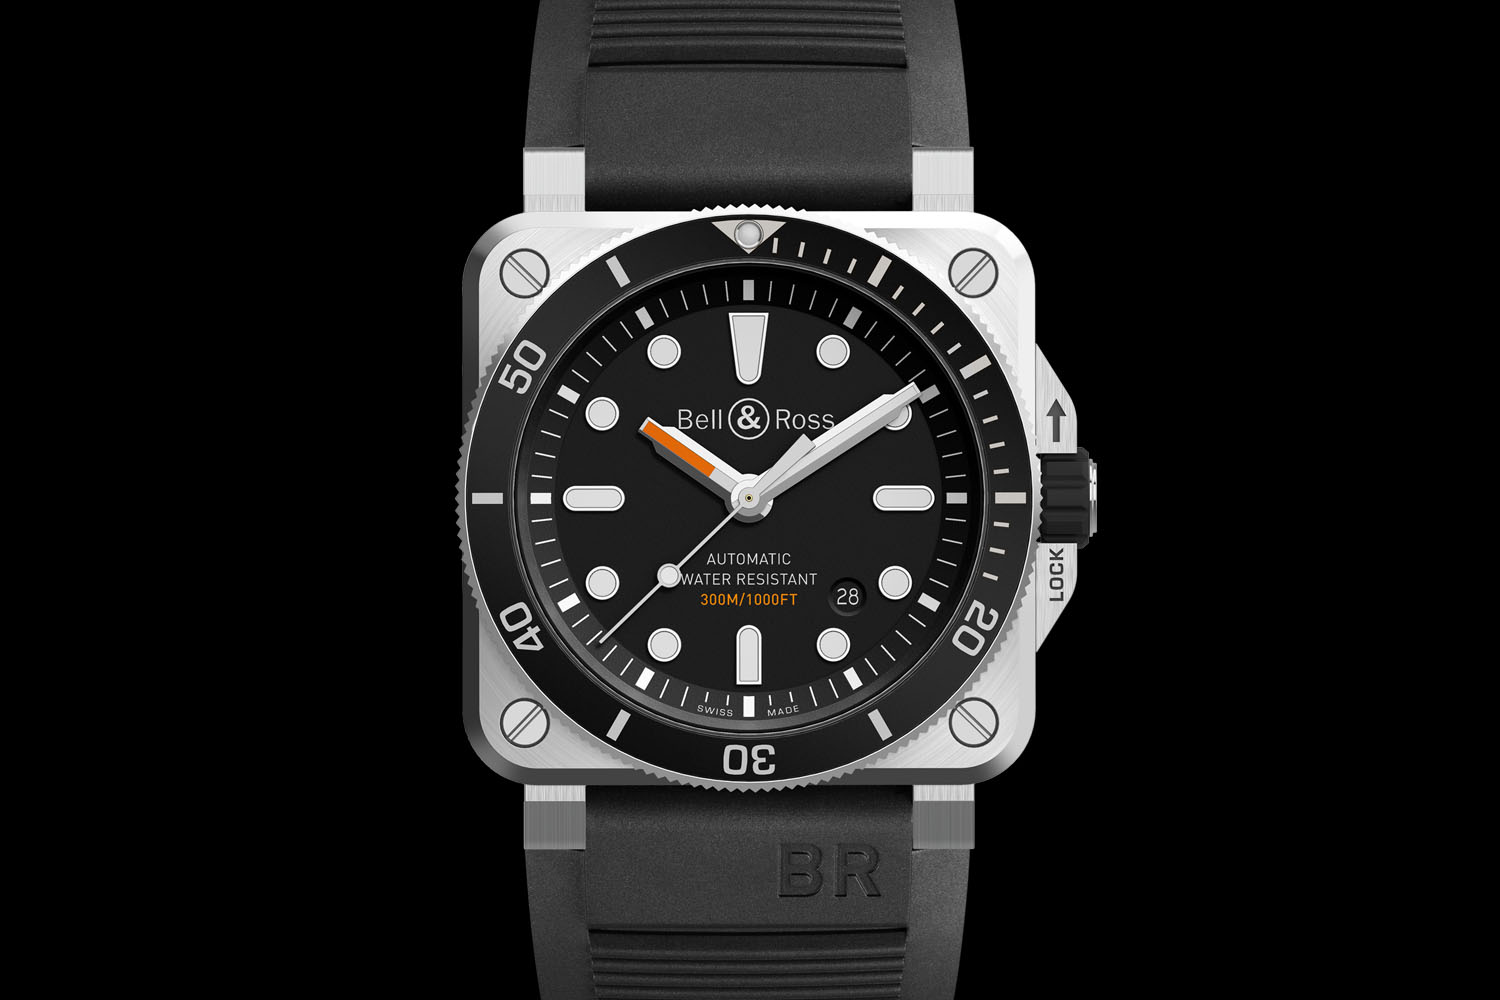 bell ross br03 92 diver the first square dive watch from b r baselworld 2017. Black Bedroom Furniture Sets. Home Design Ideas